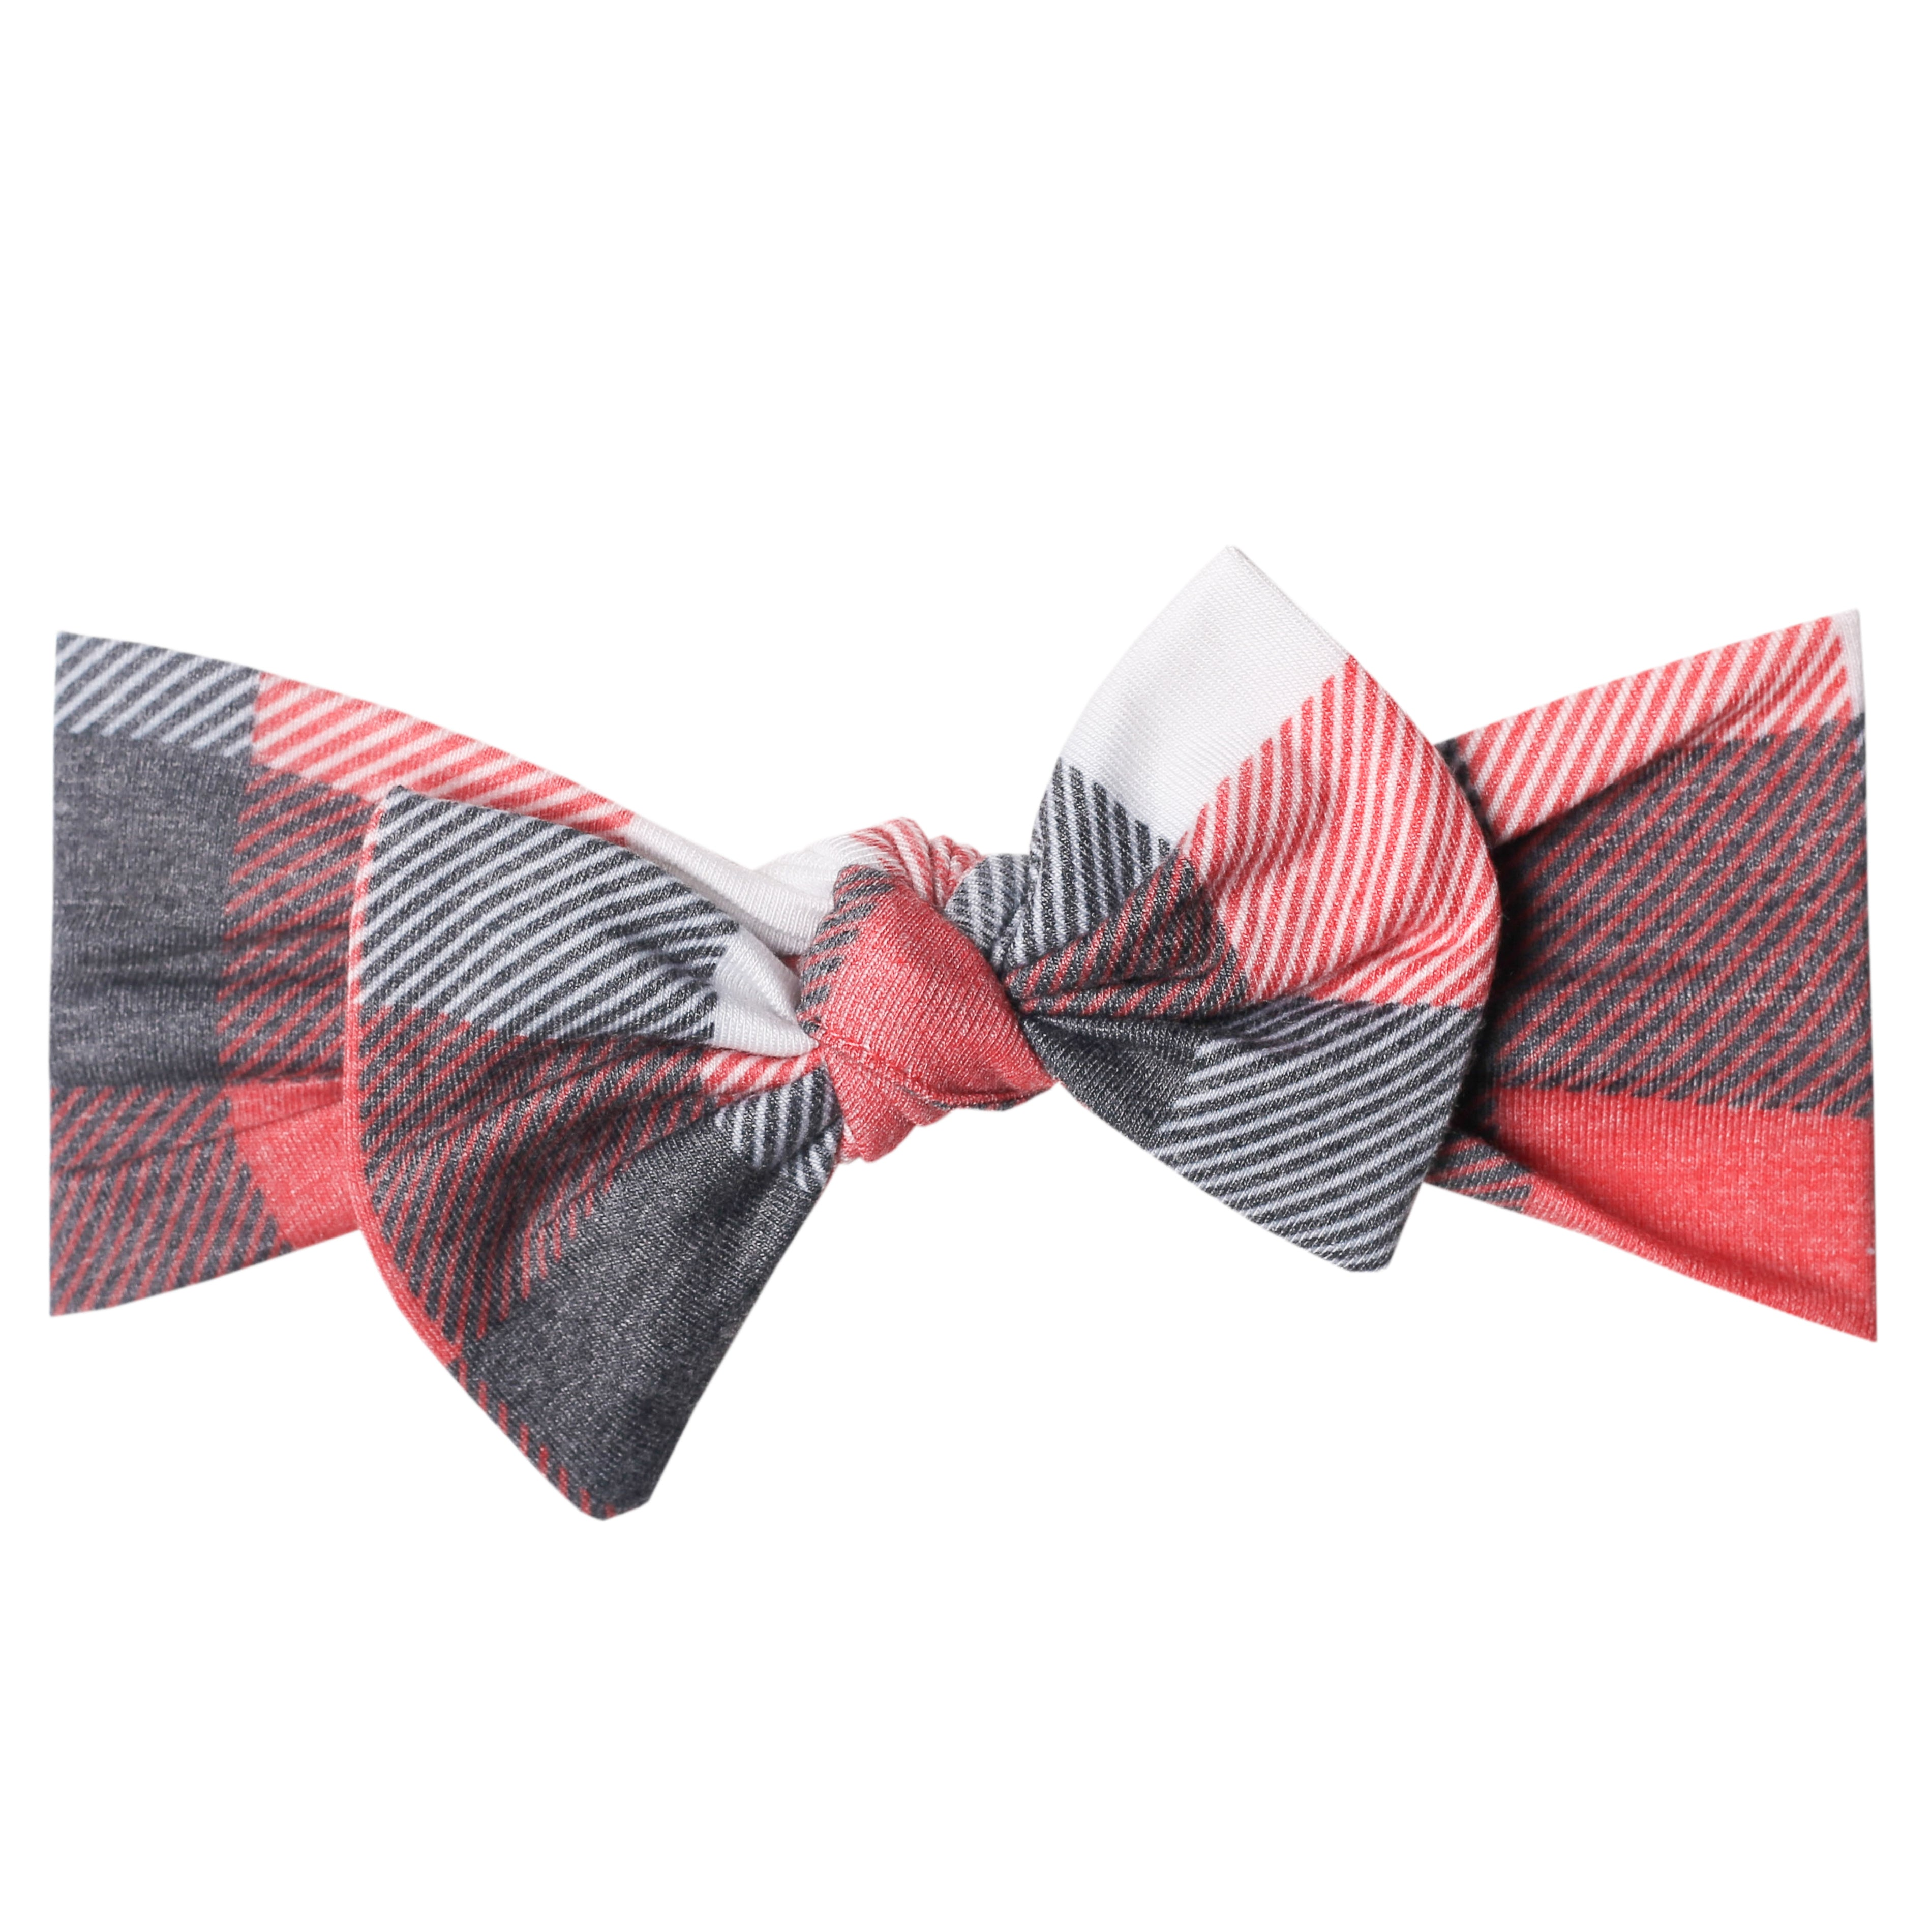 HEADBAND BOW (click for more colors)